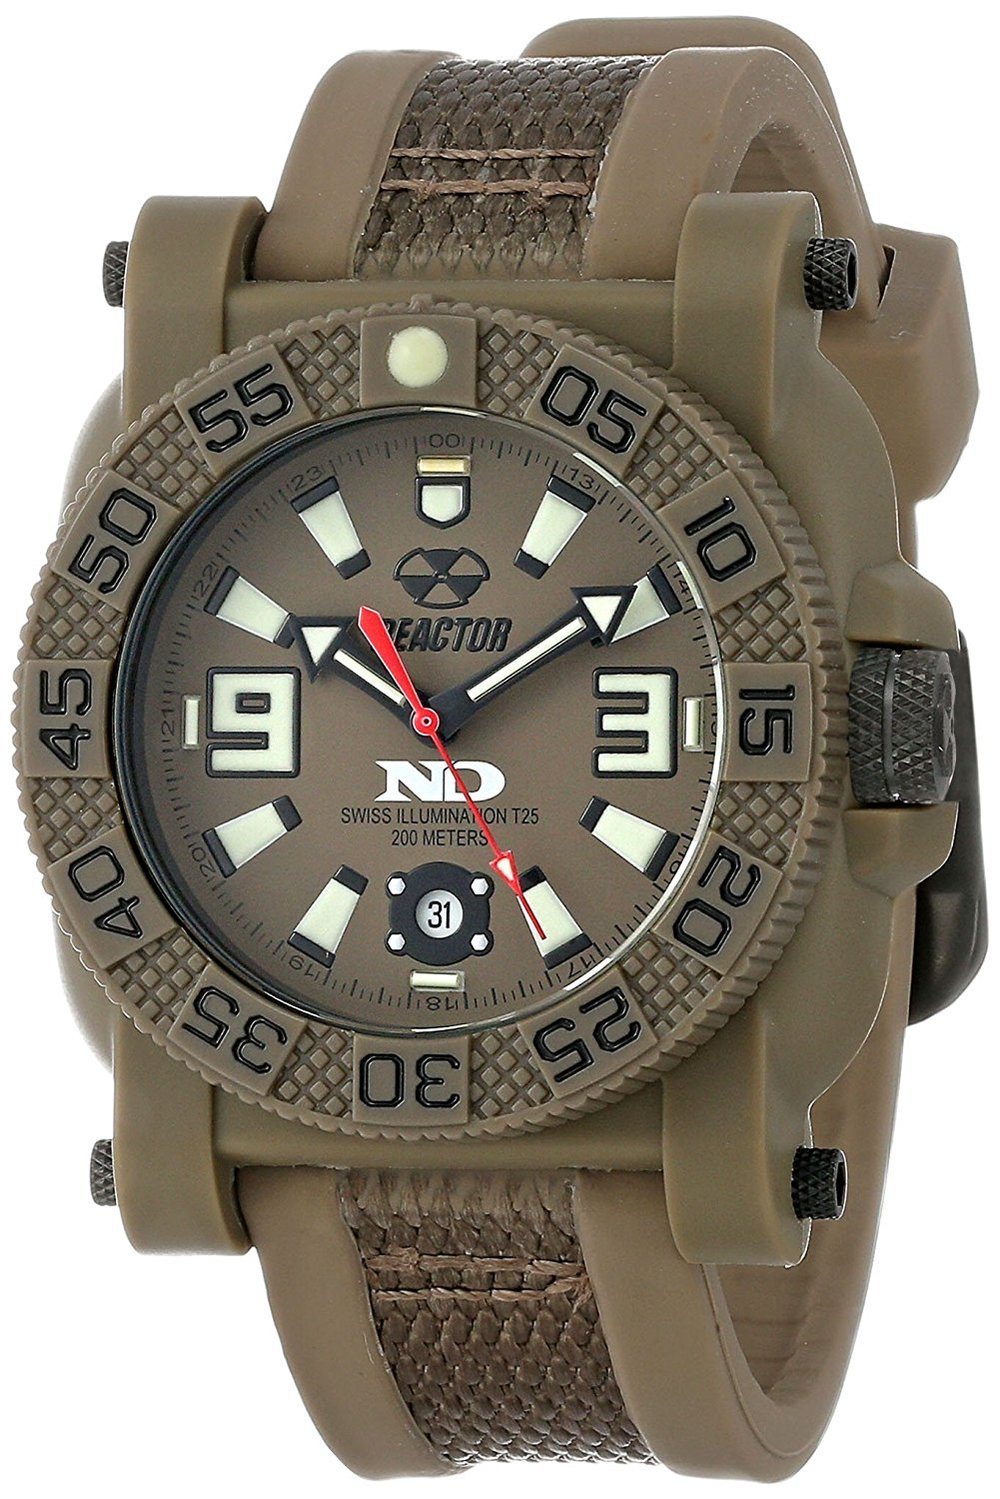 73821  -    Gryphon Never Dark Stainless Steel & Nitride Polymer Shell With Two Toned Rubber Strap.        List Price: $350       Our Price: $280